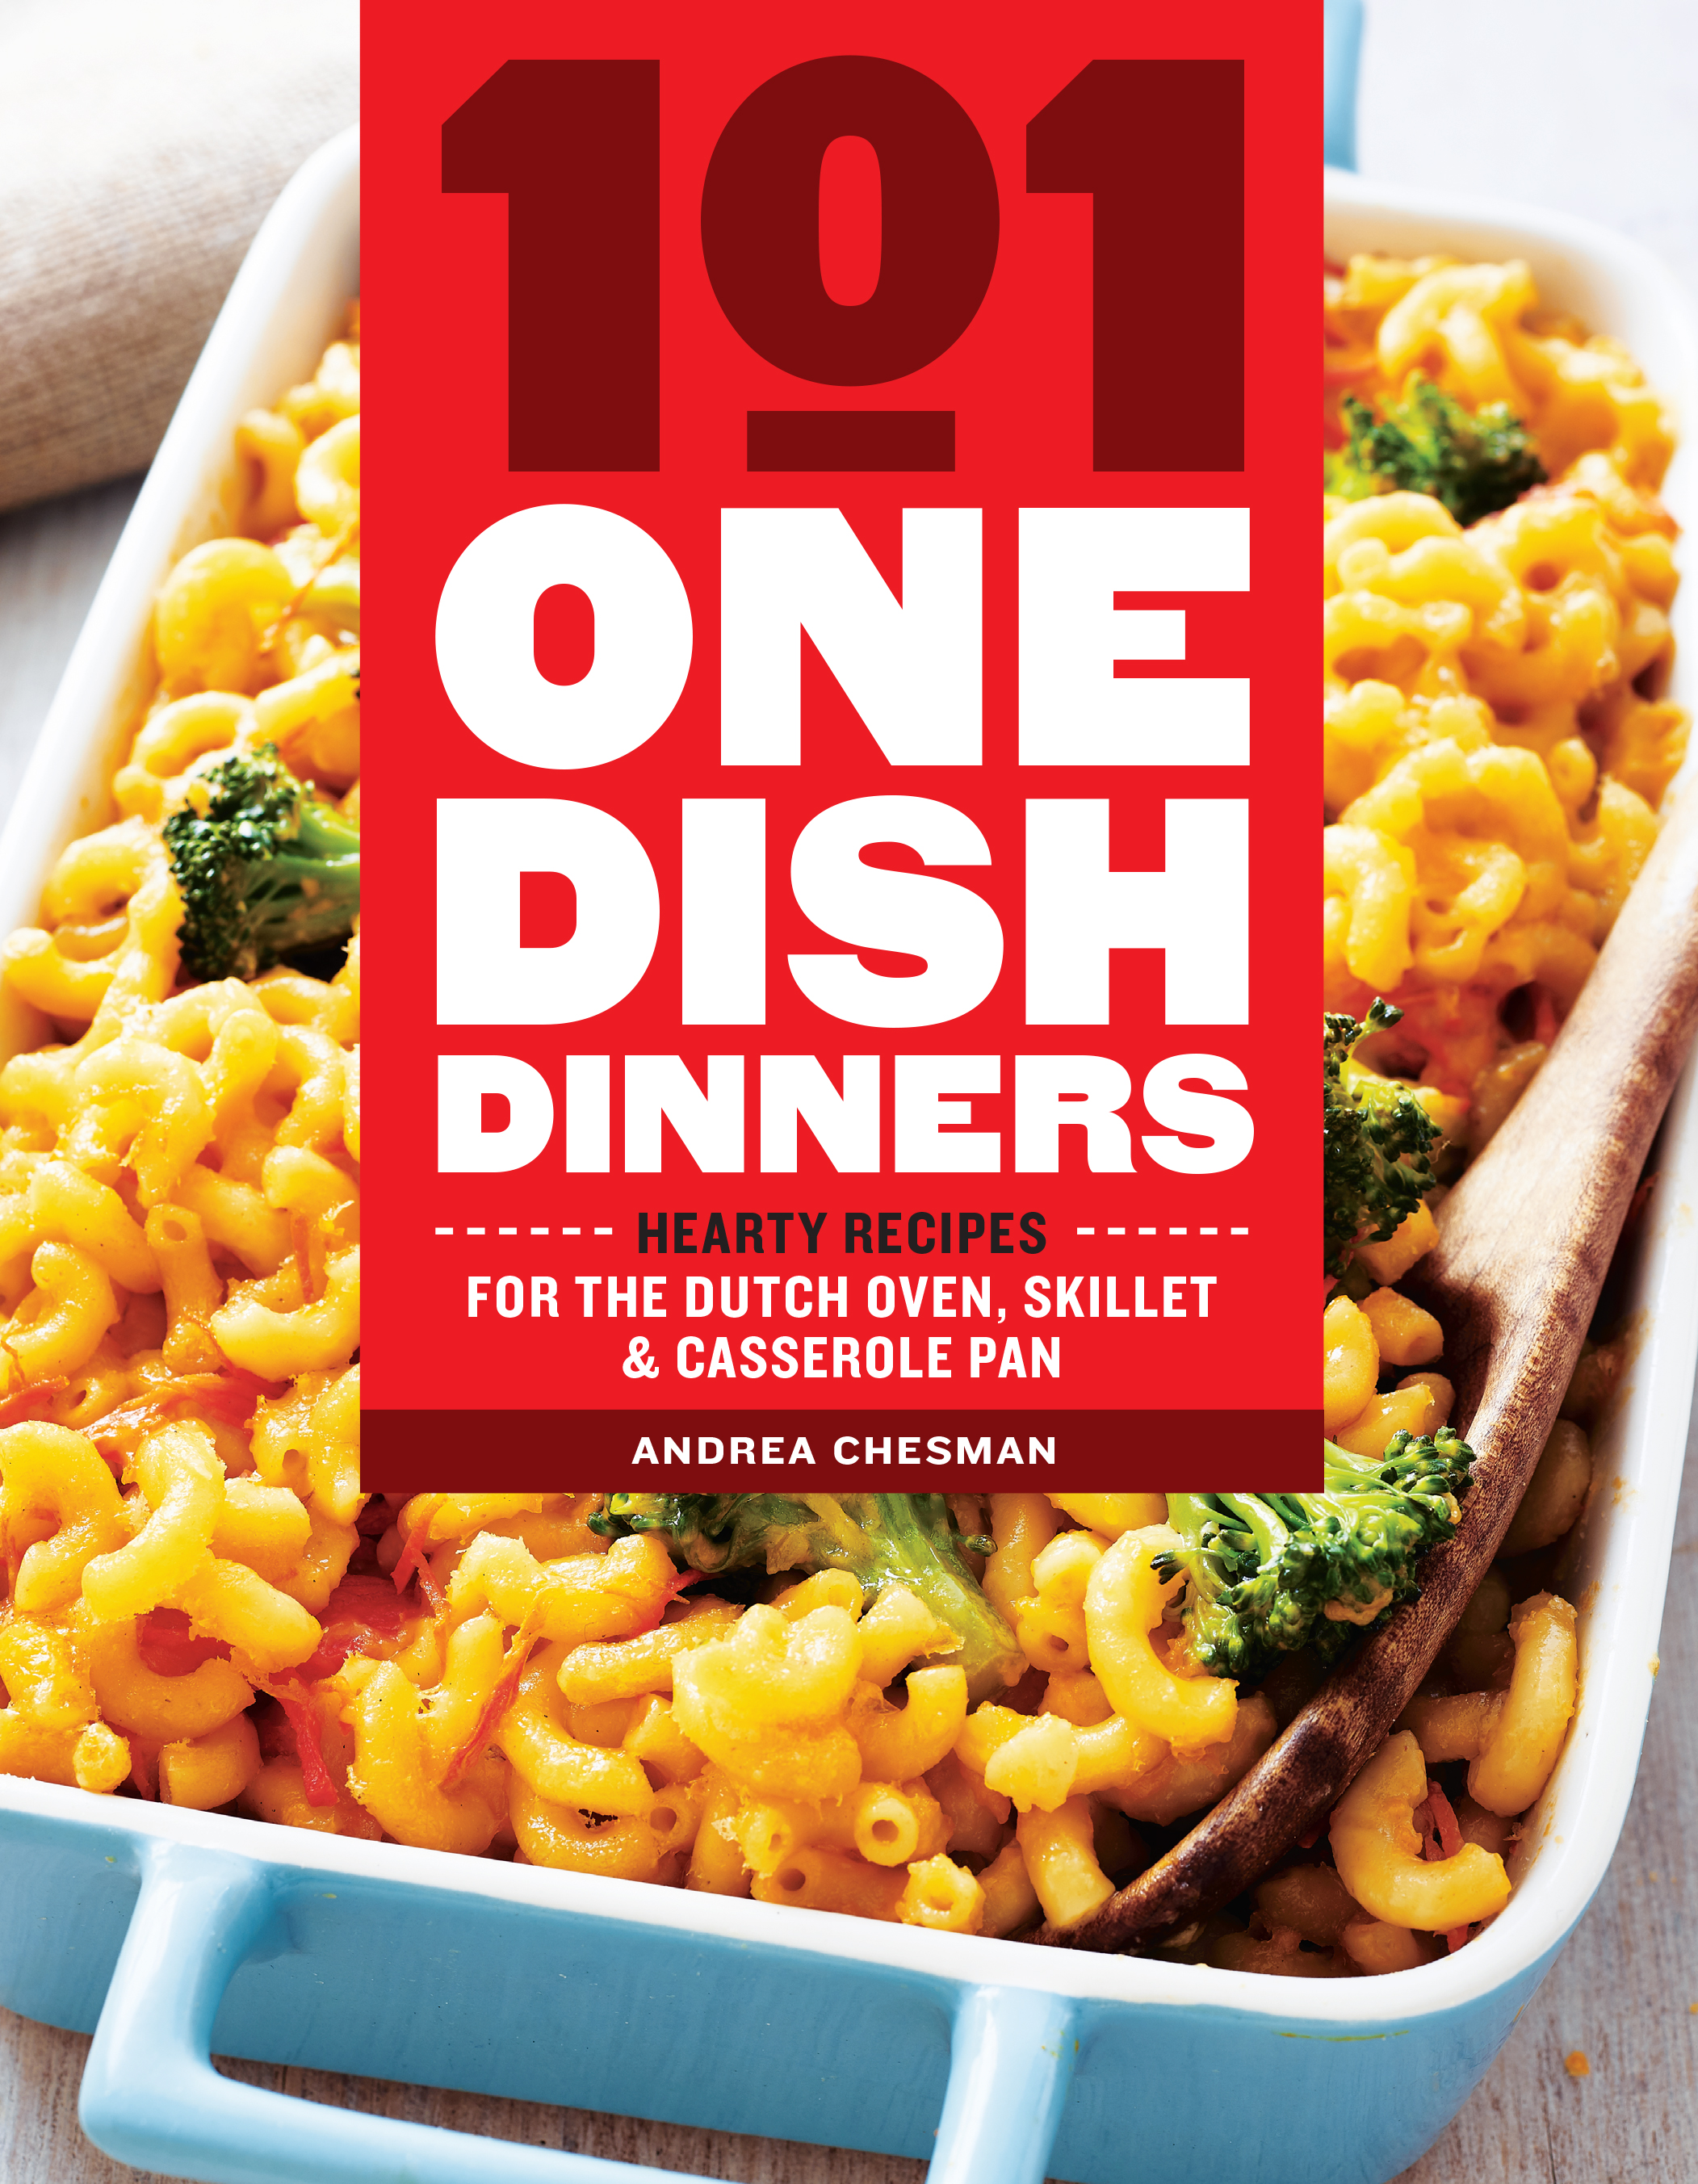 101 One-Dish Dinners Hearty Recipes for the Dutch Oven, Skillet & Casserole Pan - Andrea Chesman